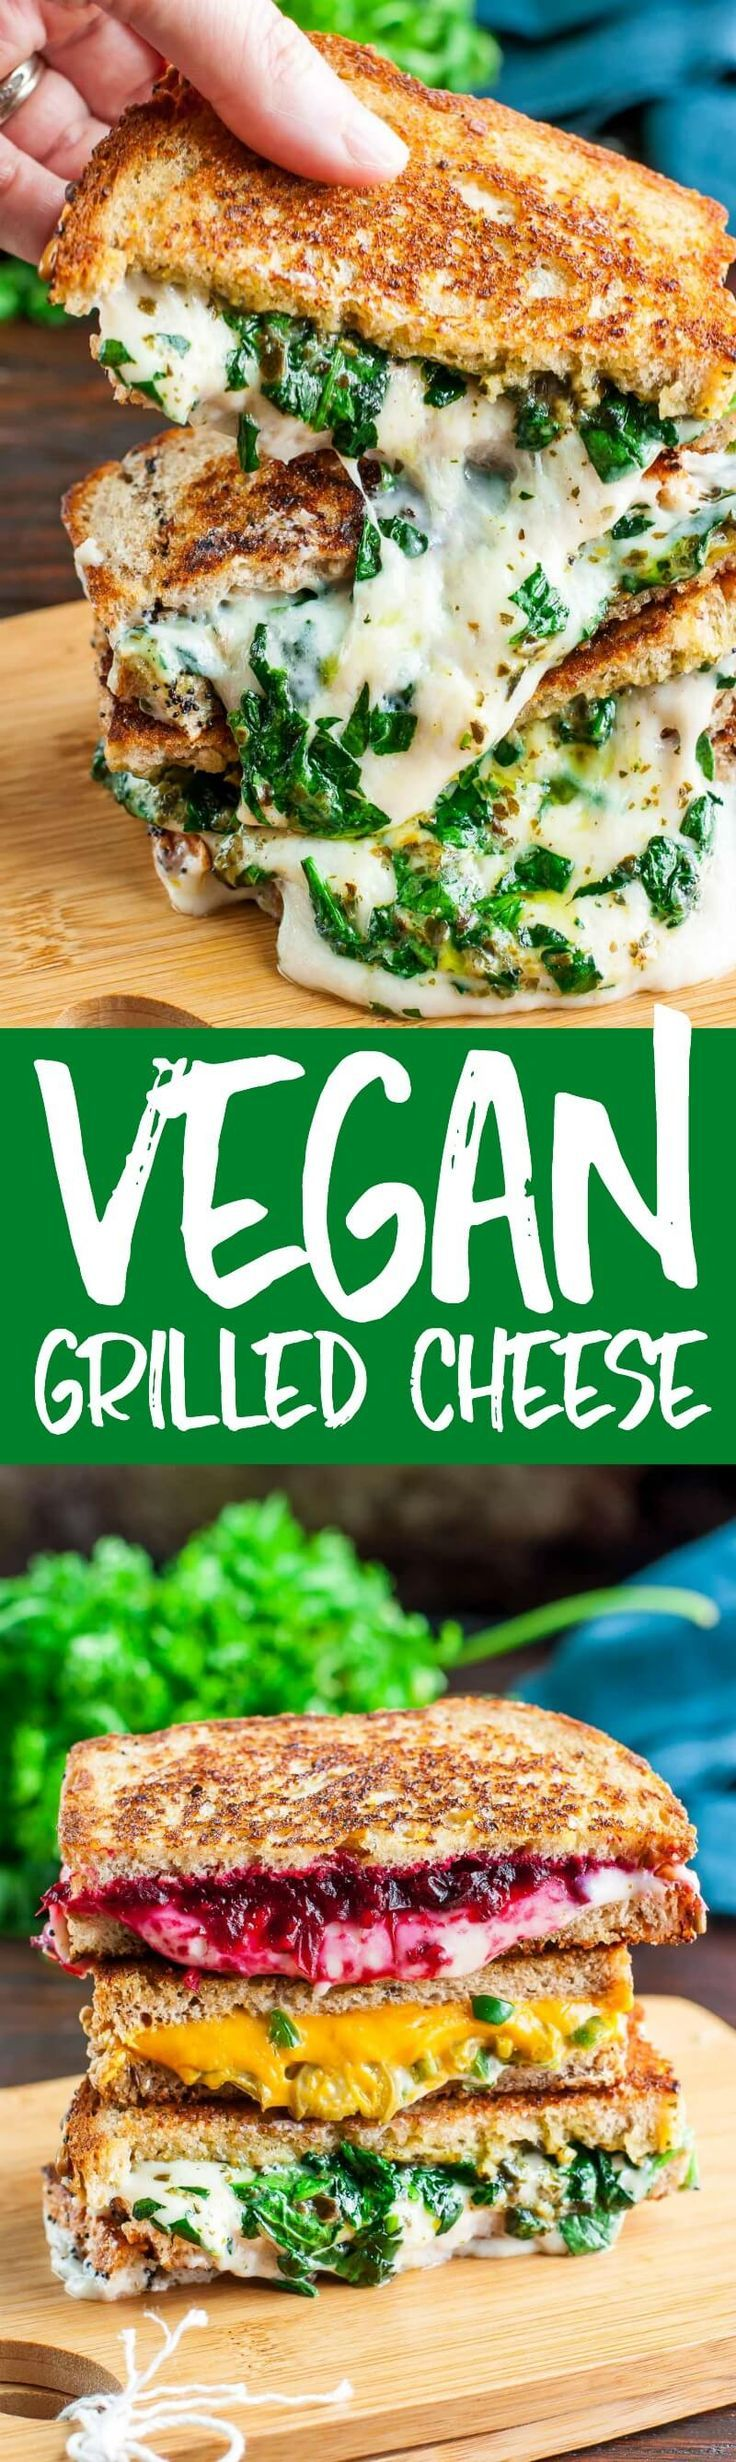 Today we're getting cheesy with three super tasty, super melty vegan grilled cheese sandwiches! Plant-based deliciousness meets comfort food.